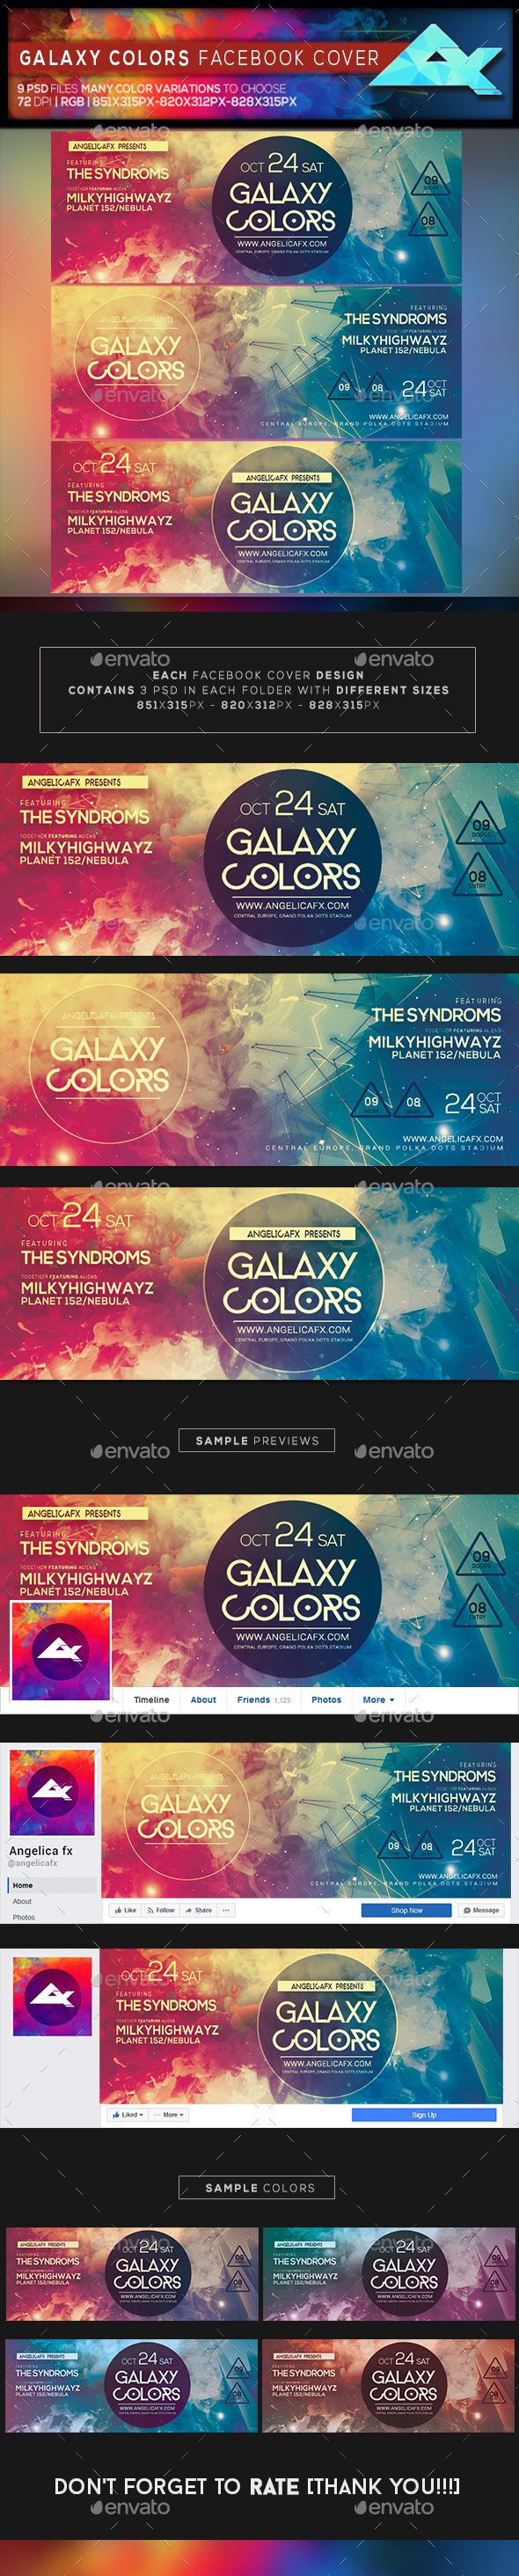 Galaxy Colors Facebook Cover - Facebook Timeline Covers Social Media